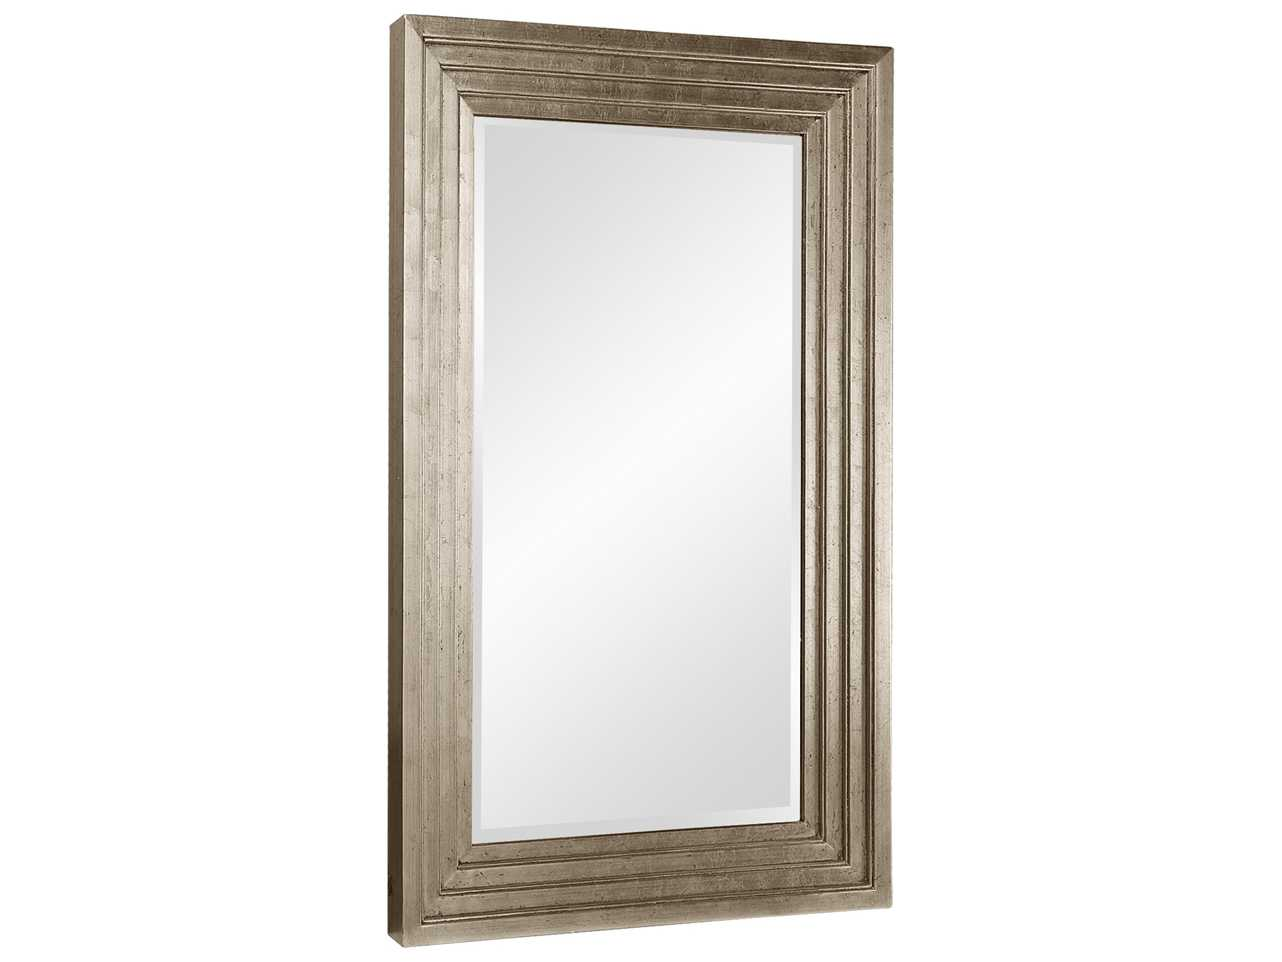 Howard elliott delano 34 x 46 small silver wall mirror for Small silver mirror